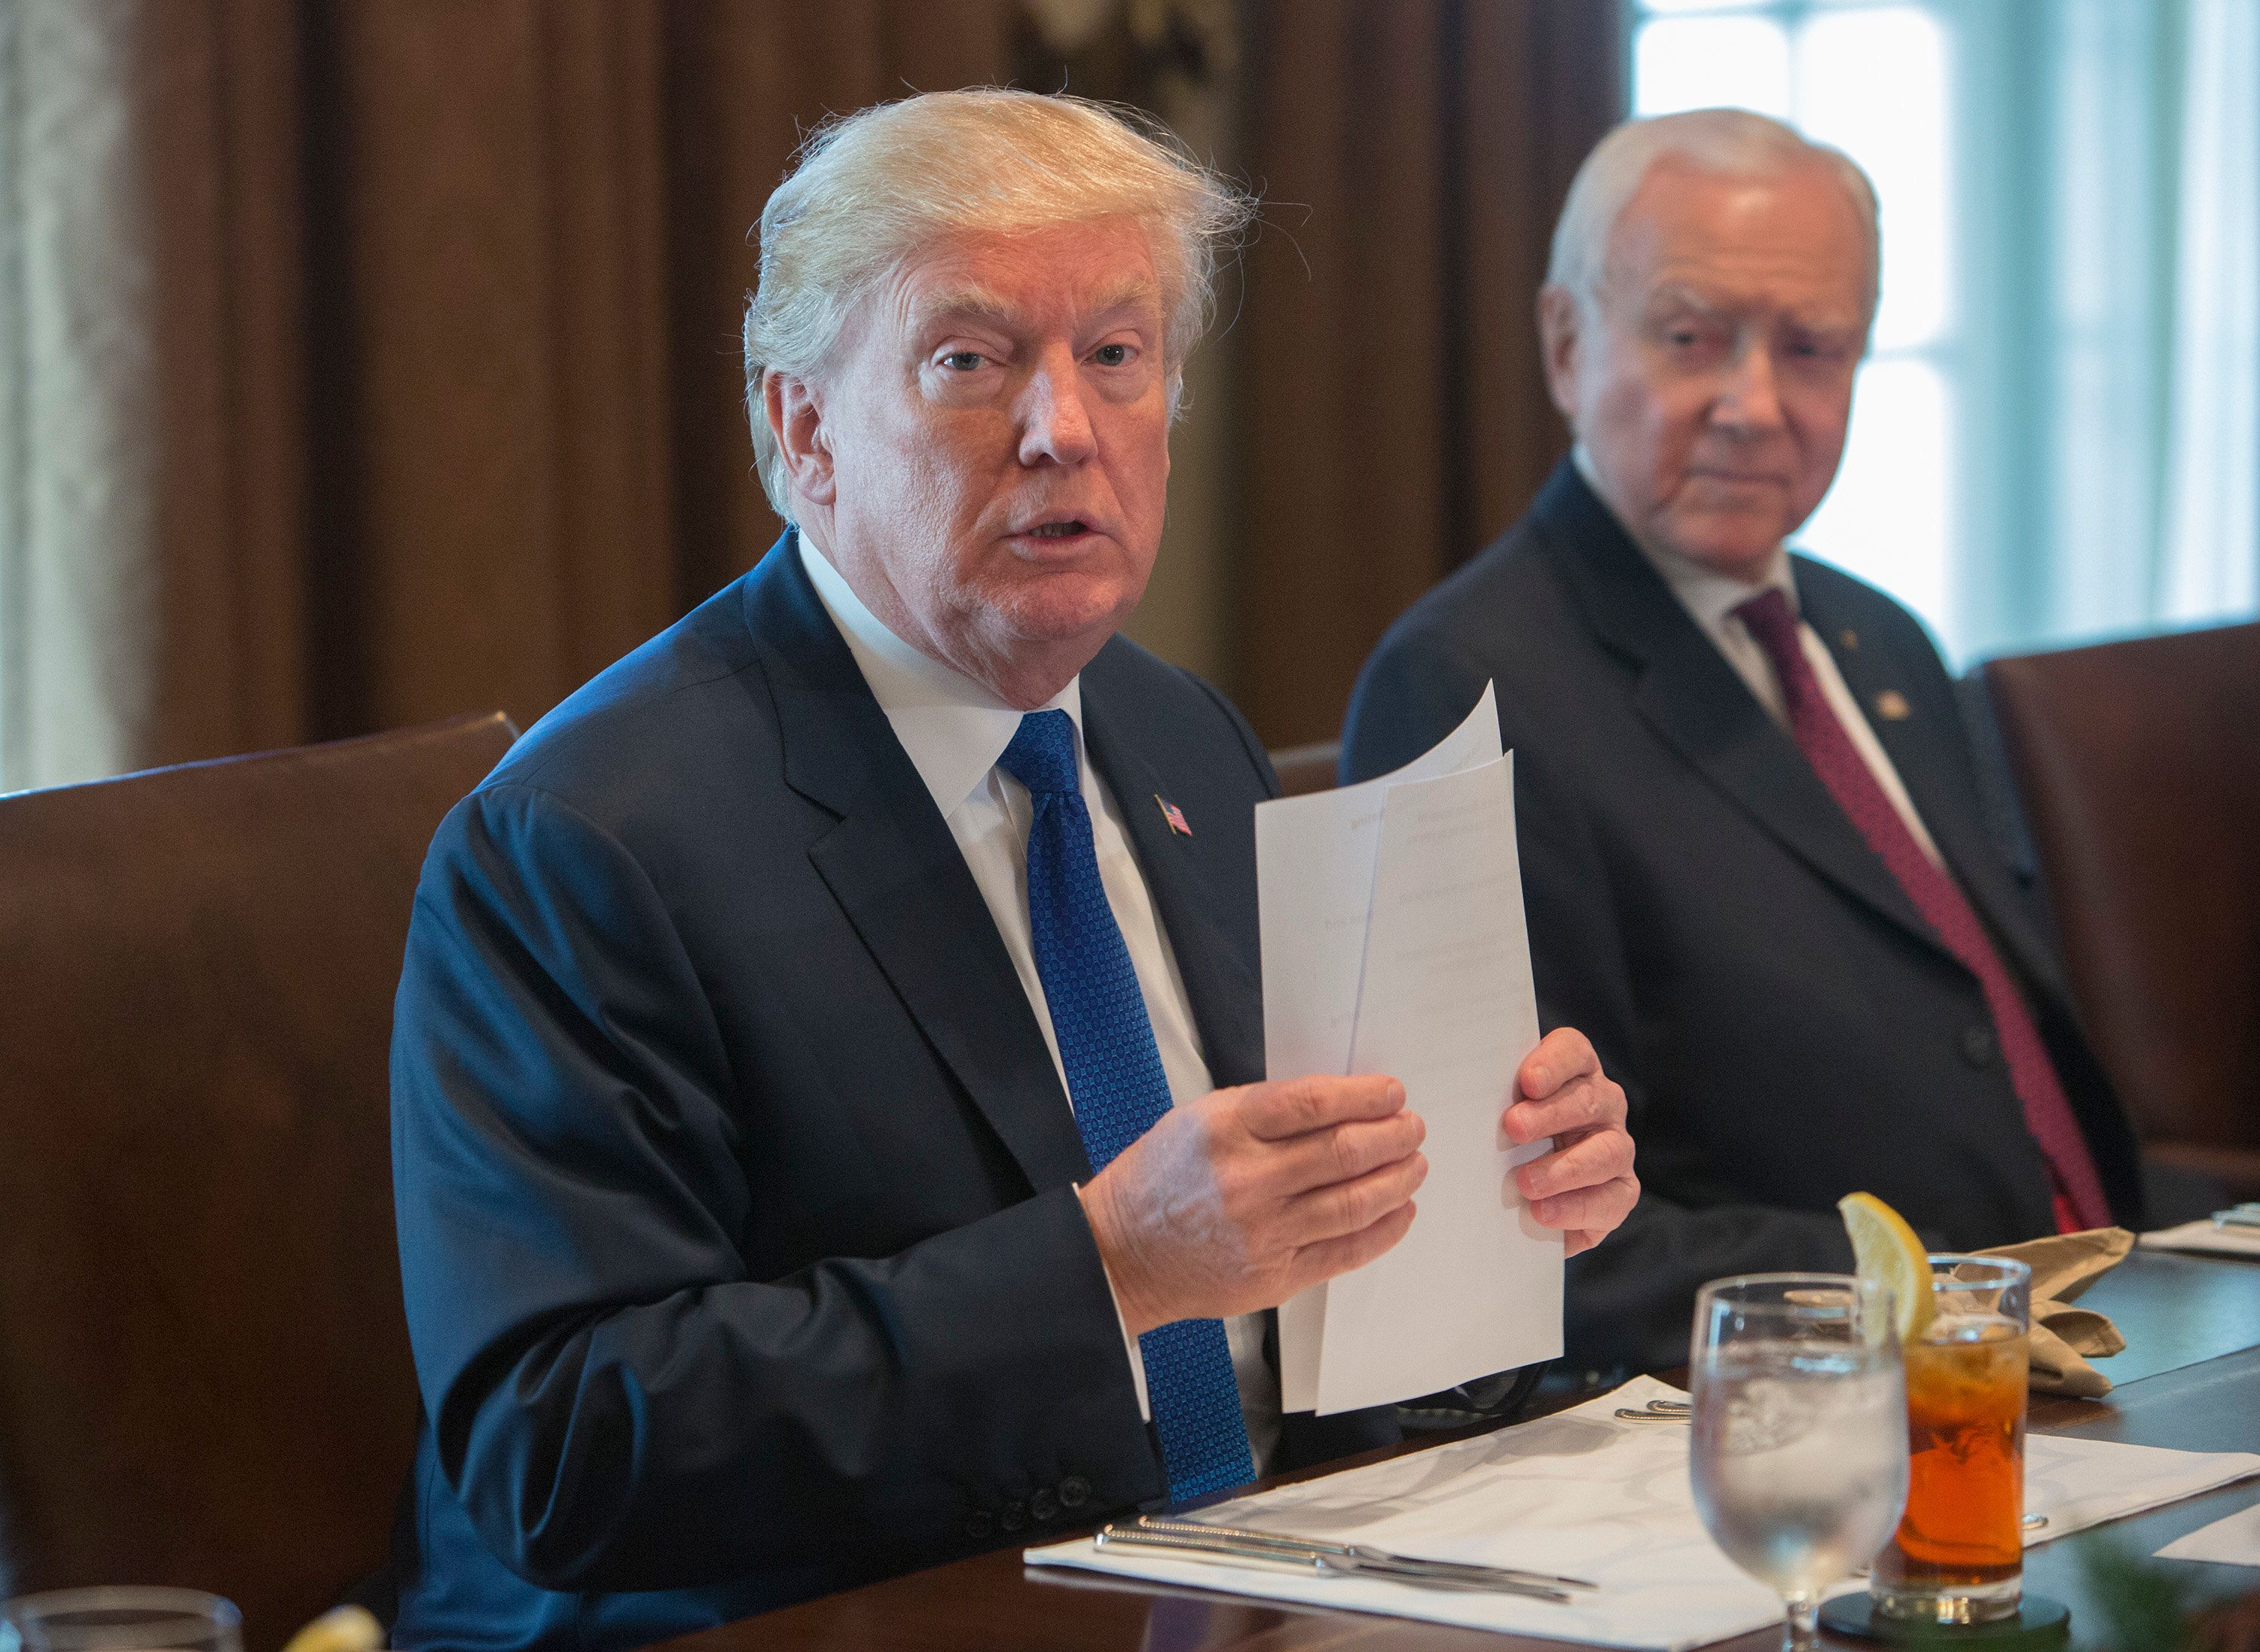 WASHINGTON, DC - DECEMBER 13: (AFP OUT) U.S. President Donald Trump speaks about tax reform during a bicameral meeting on December 13, 2017 at the White House in Washington, DC. Seated right is Senator Orrin Hatch(R-UT). (Photo by Chris Kleponis - Pool/Getty Images)